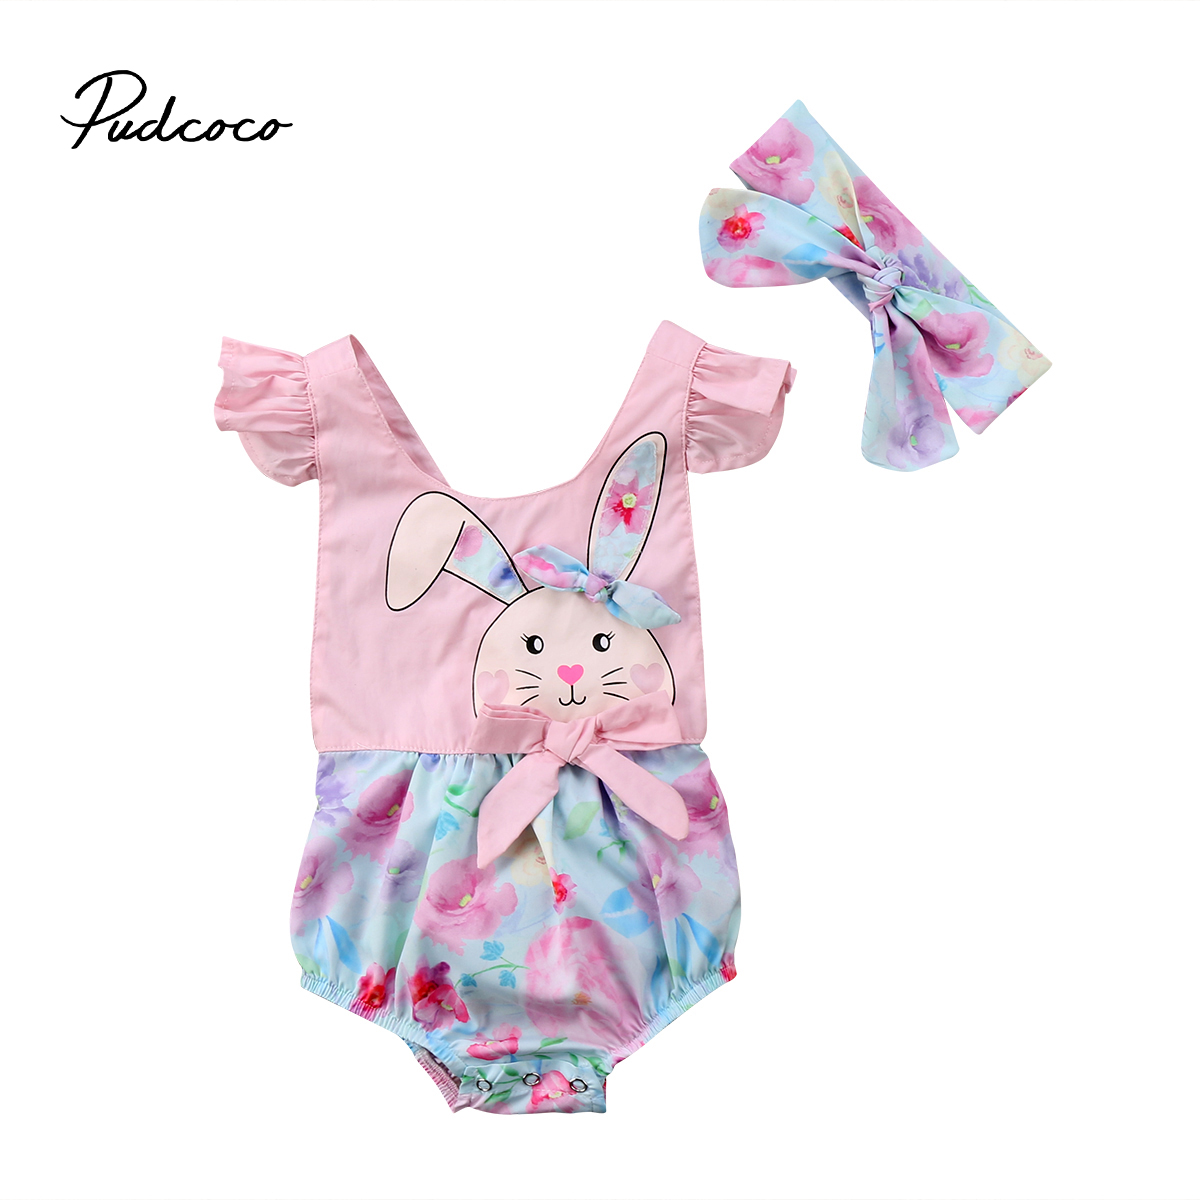 2018 New Easter Floral Romper Newborn Baby Girl Bunny Romper Flying Sleeve Jumpsuit Outfits Summer Flower Clothes 0-24M summer 2017 baby kids girl boy infant summer sleeveless romper harlan jumpsuit clothes outfits 0 24m